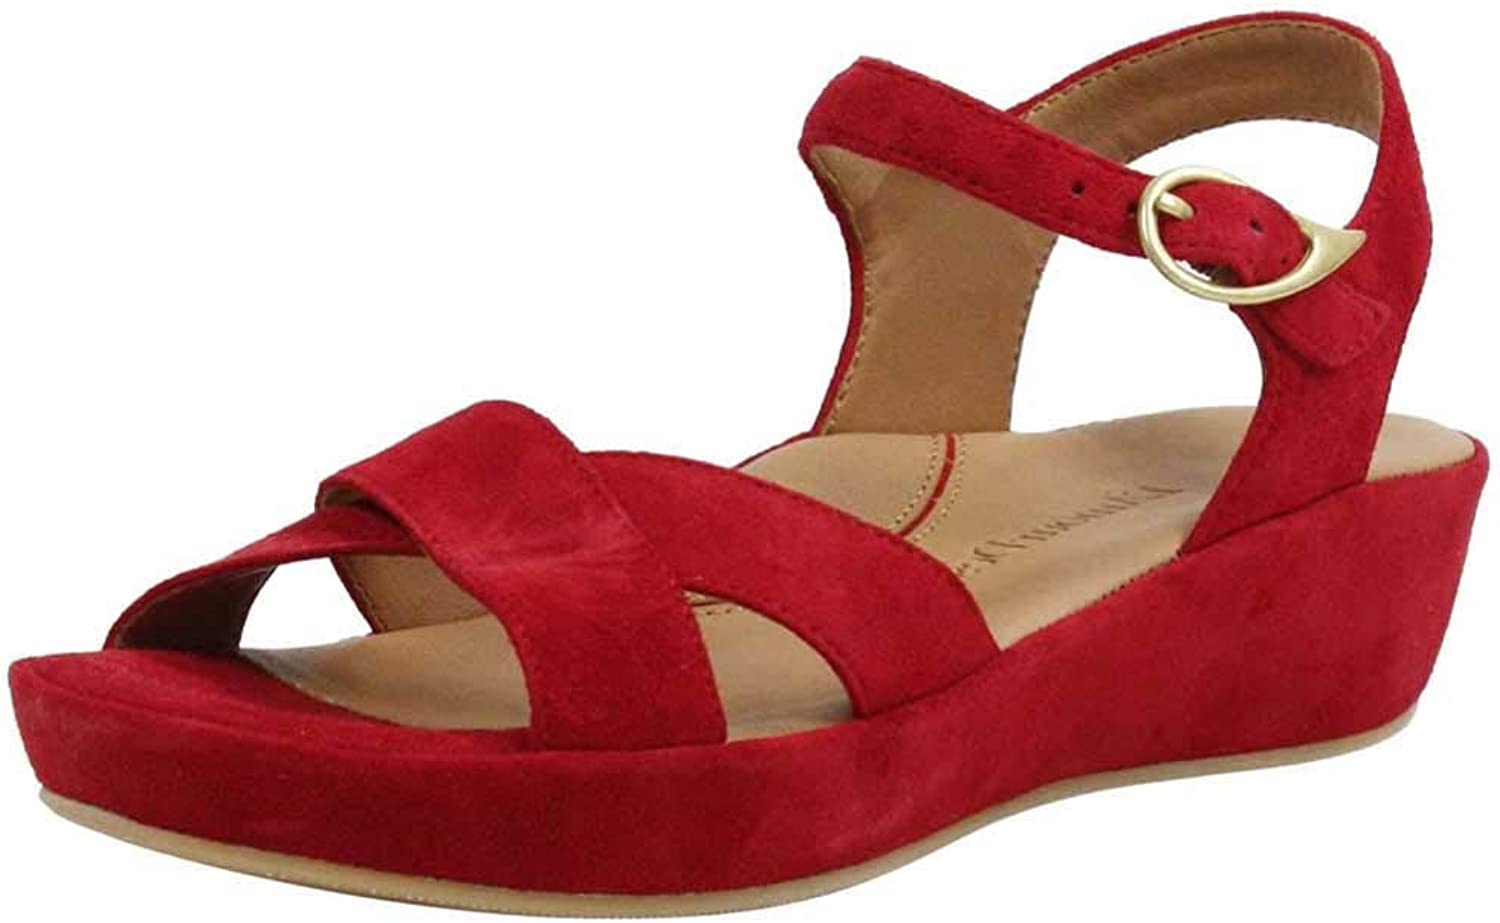 Lamour Des Pieds Women's Casimiro in Bright Red Kid Suede - Size 7.5 M